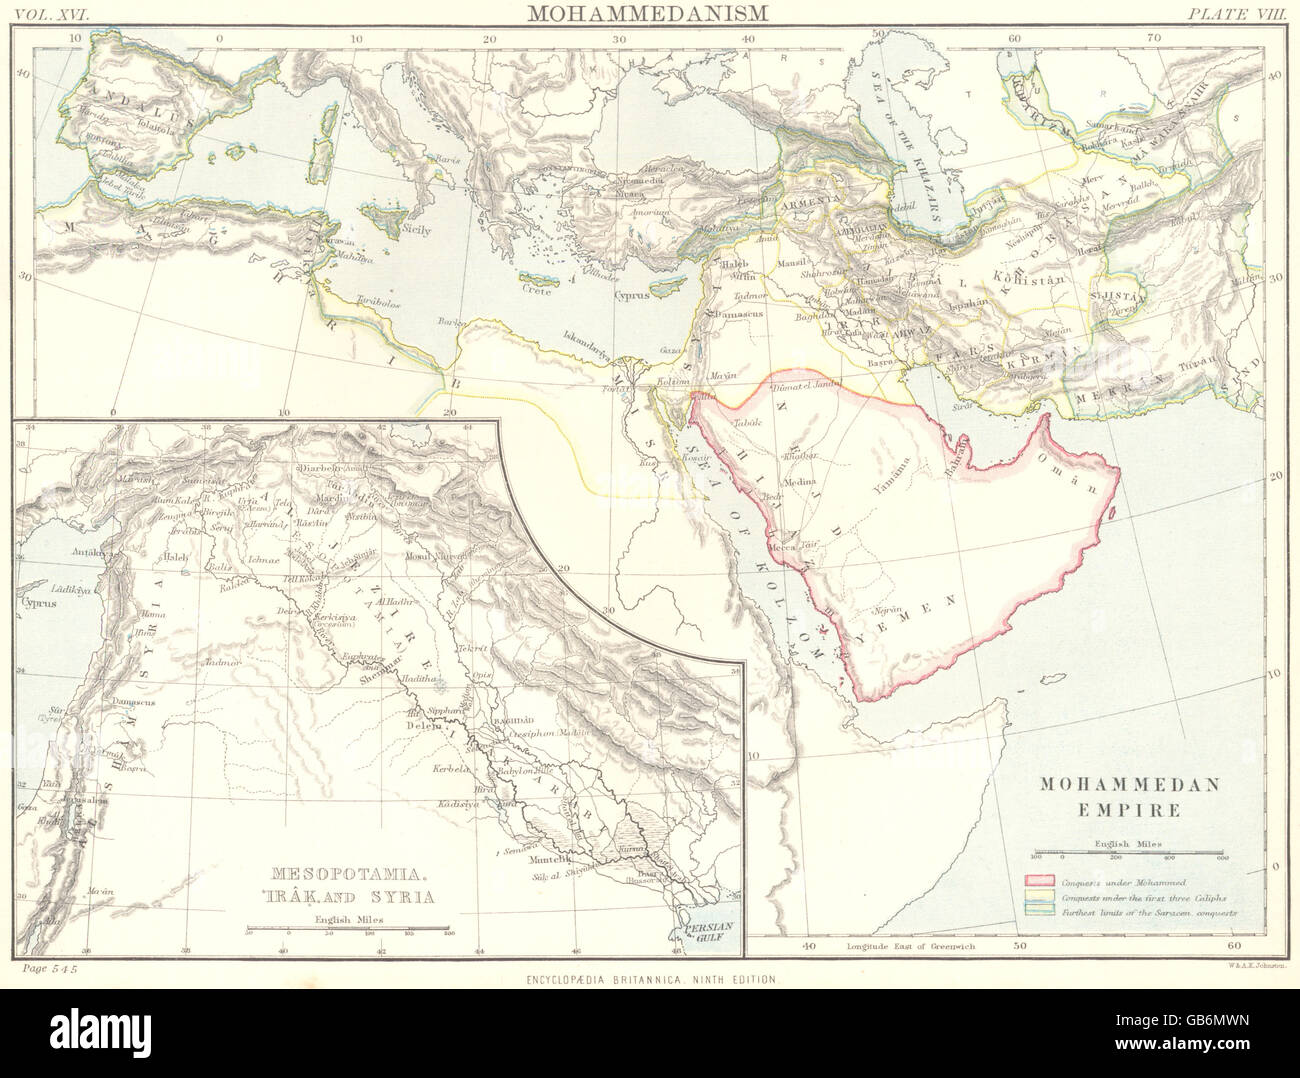 MIDDLE EAST: Islam Muslim Empire; Inset map of Mesopotamia, Iraq ...